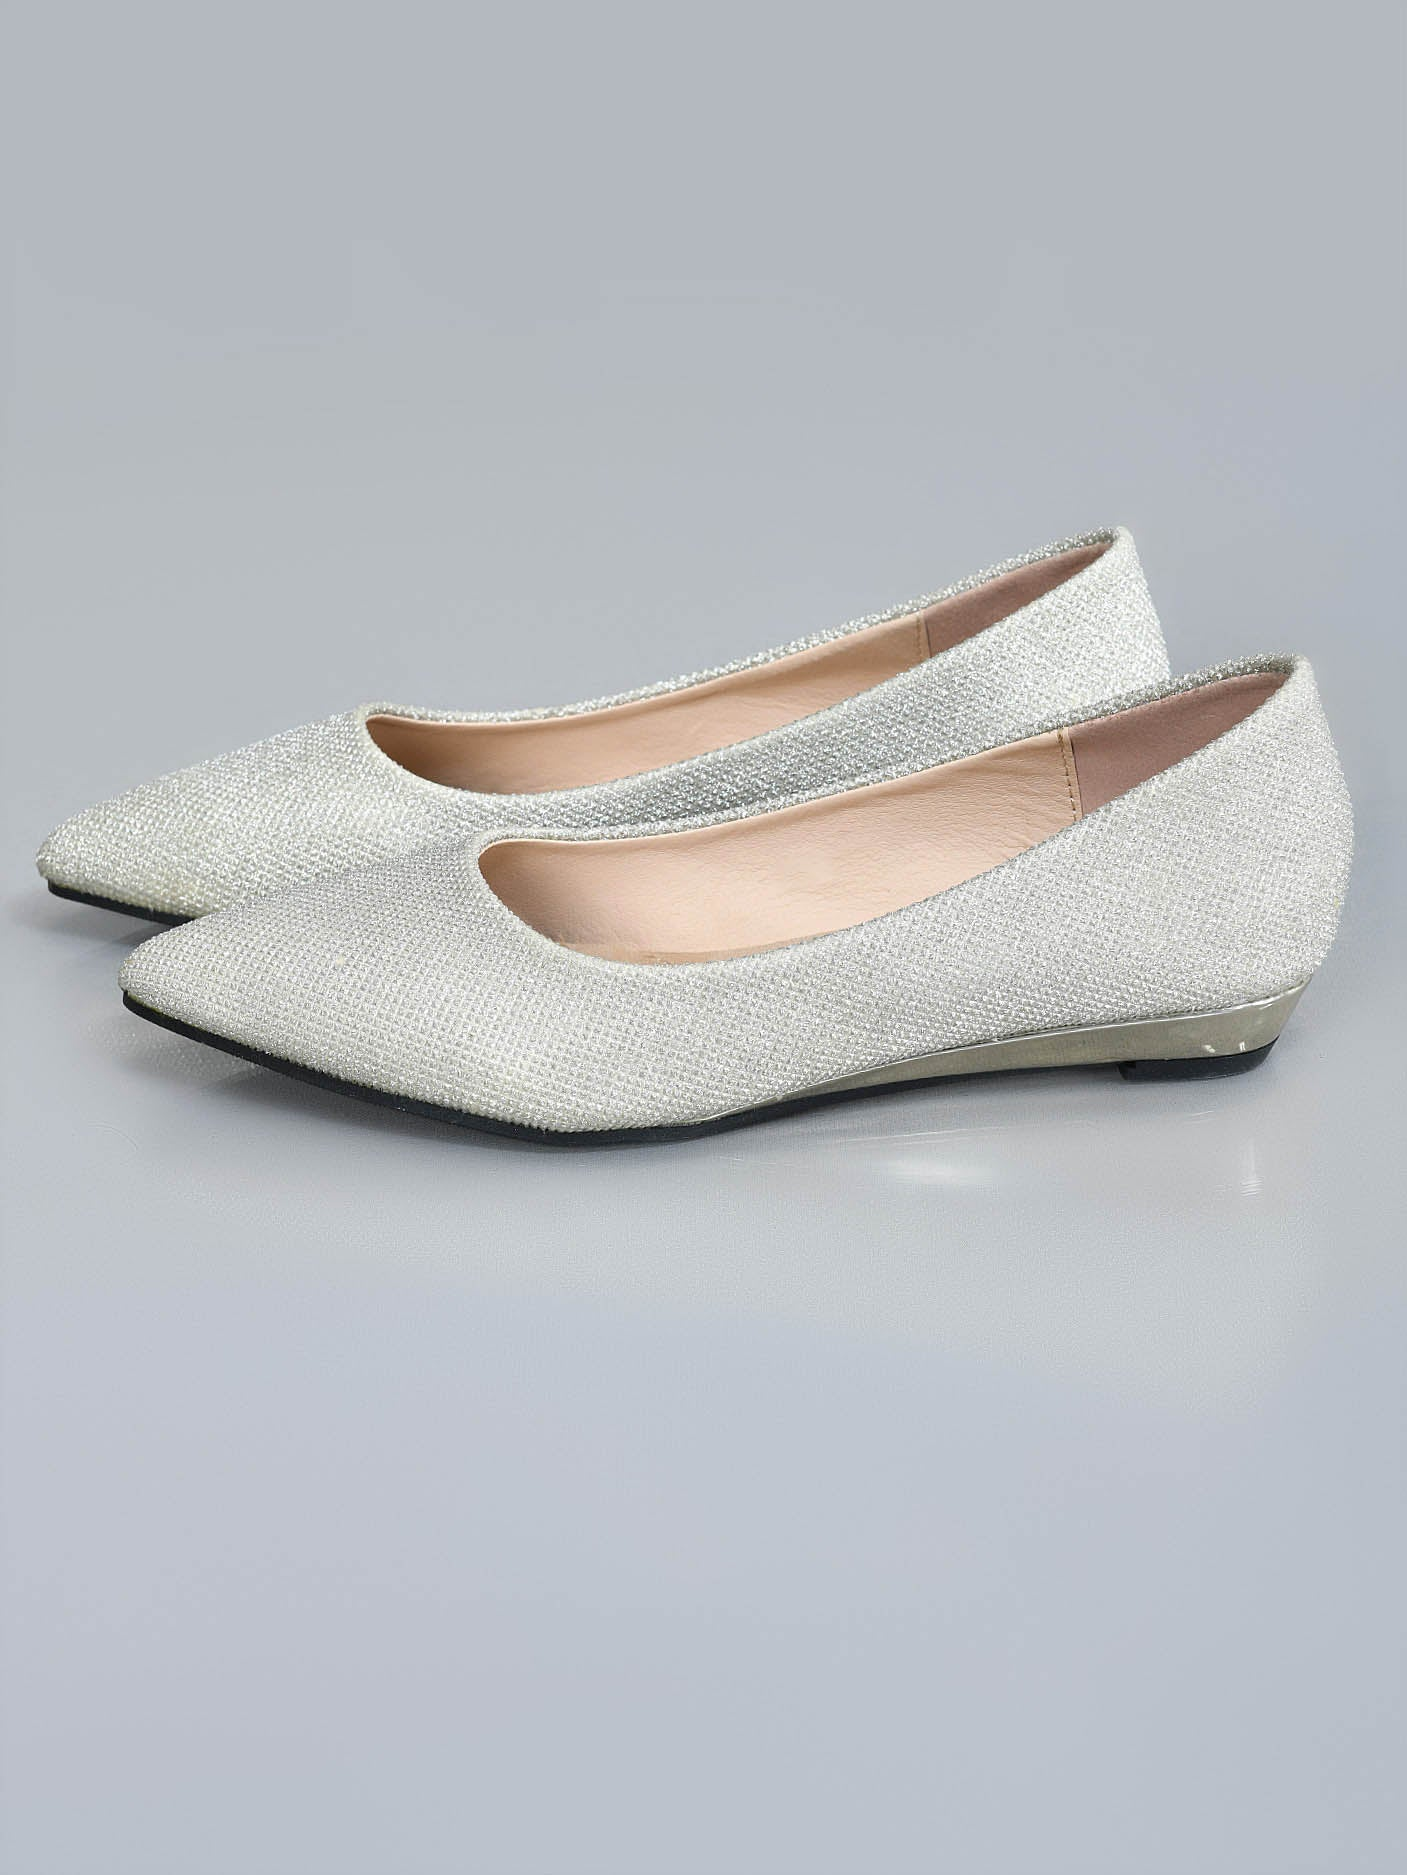 Shimmery Pointed Pumps - Light Golden